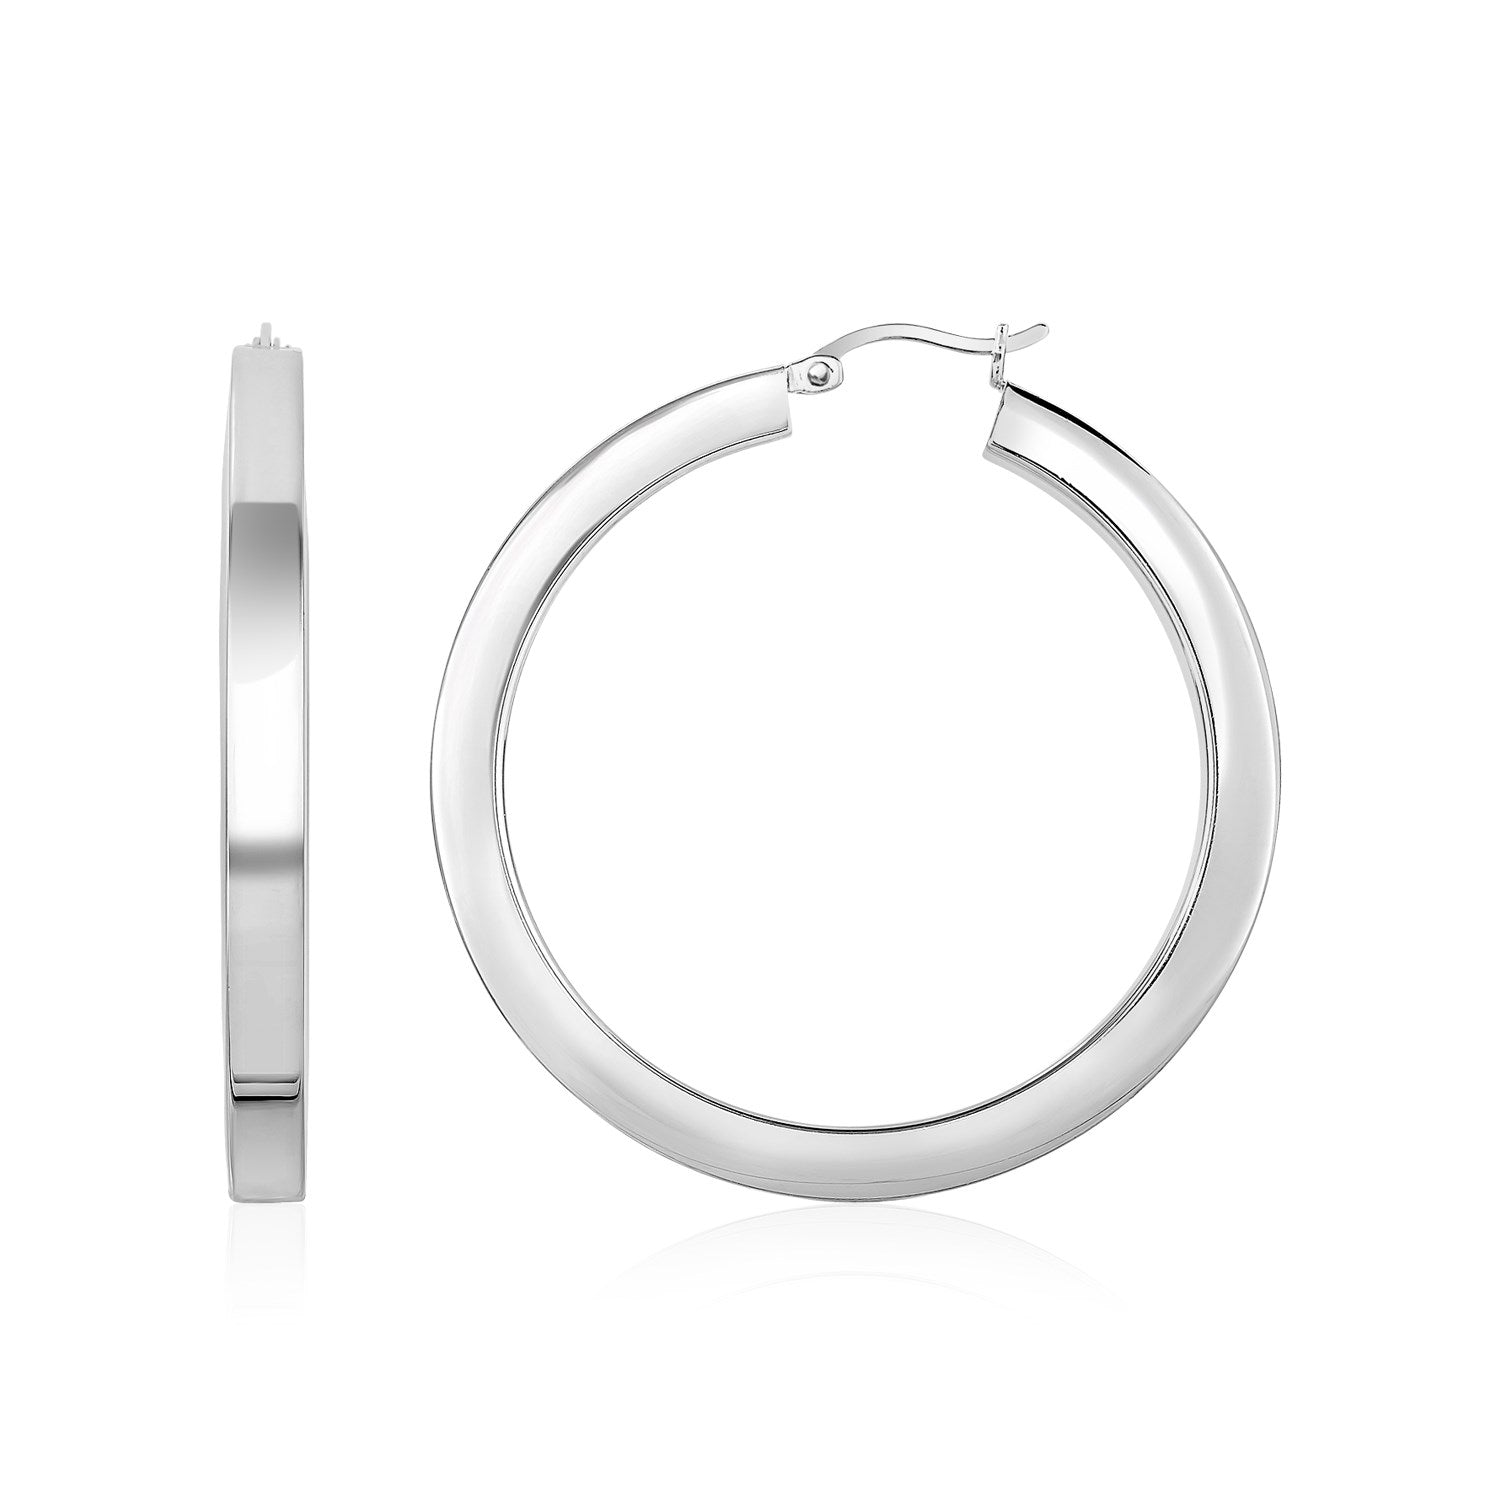 High Polish Tube Hoop Earrings in Sterling Silver